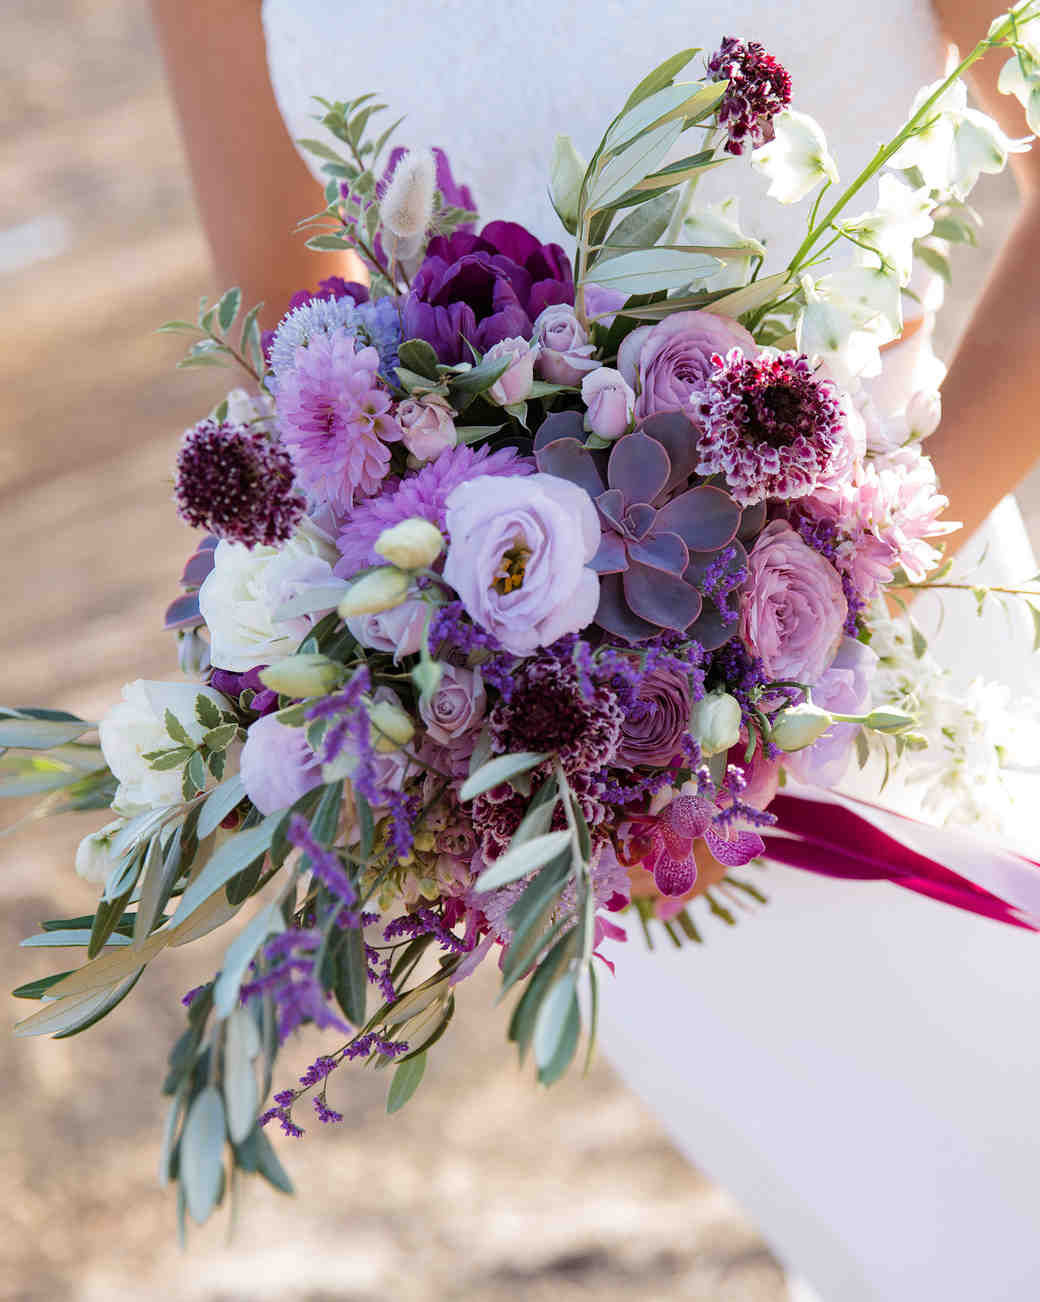 bouquet with purple garden roses and succulent